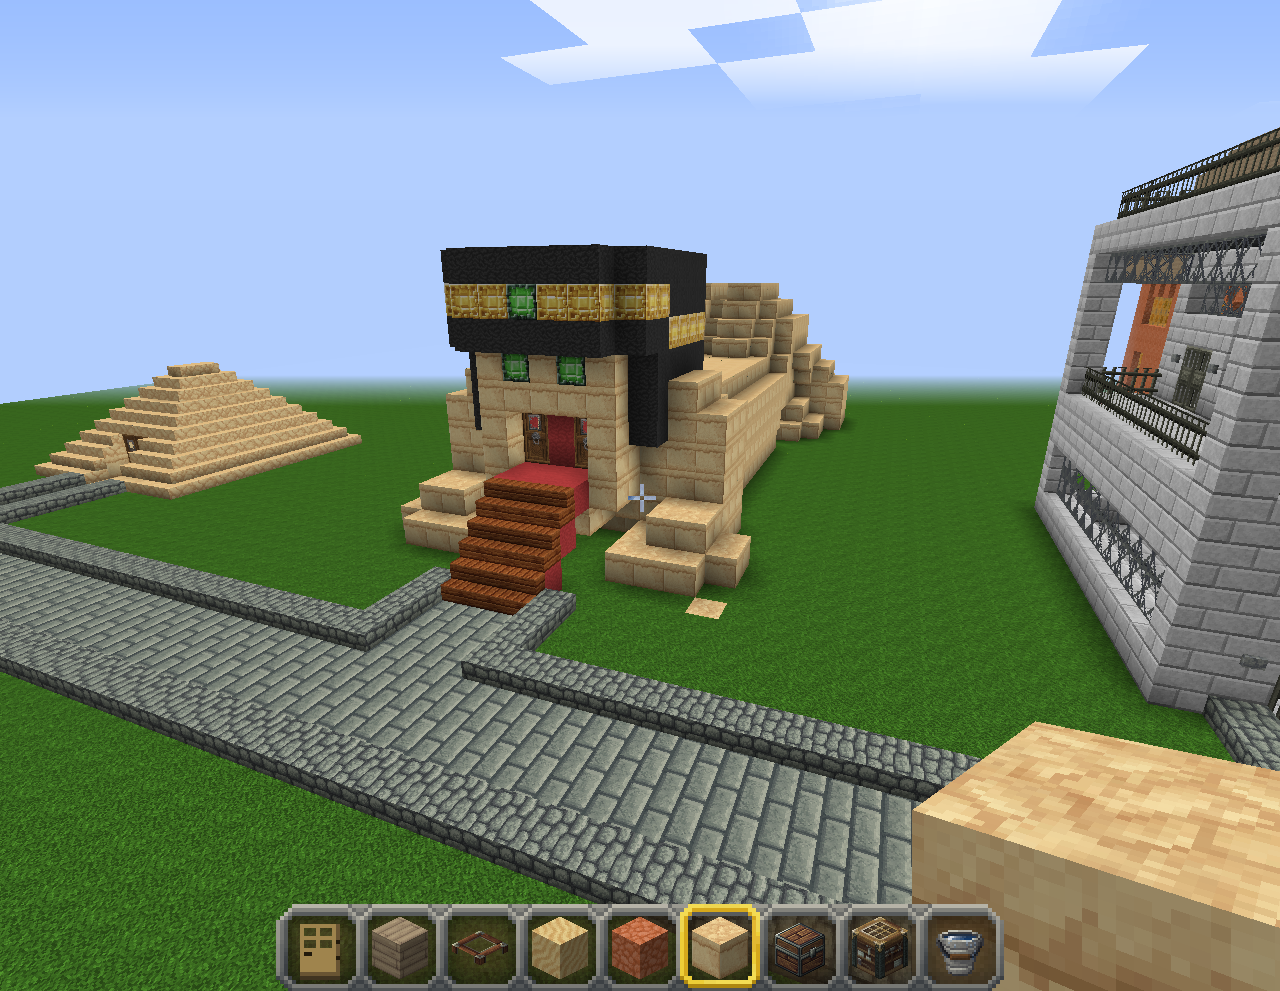 Architecte d butant faite votre construction sur demande f - Construction minecraft maison ...